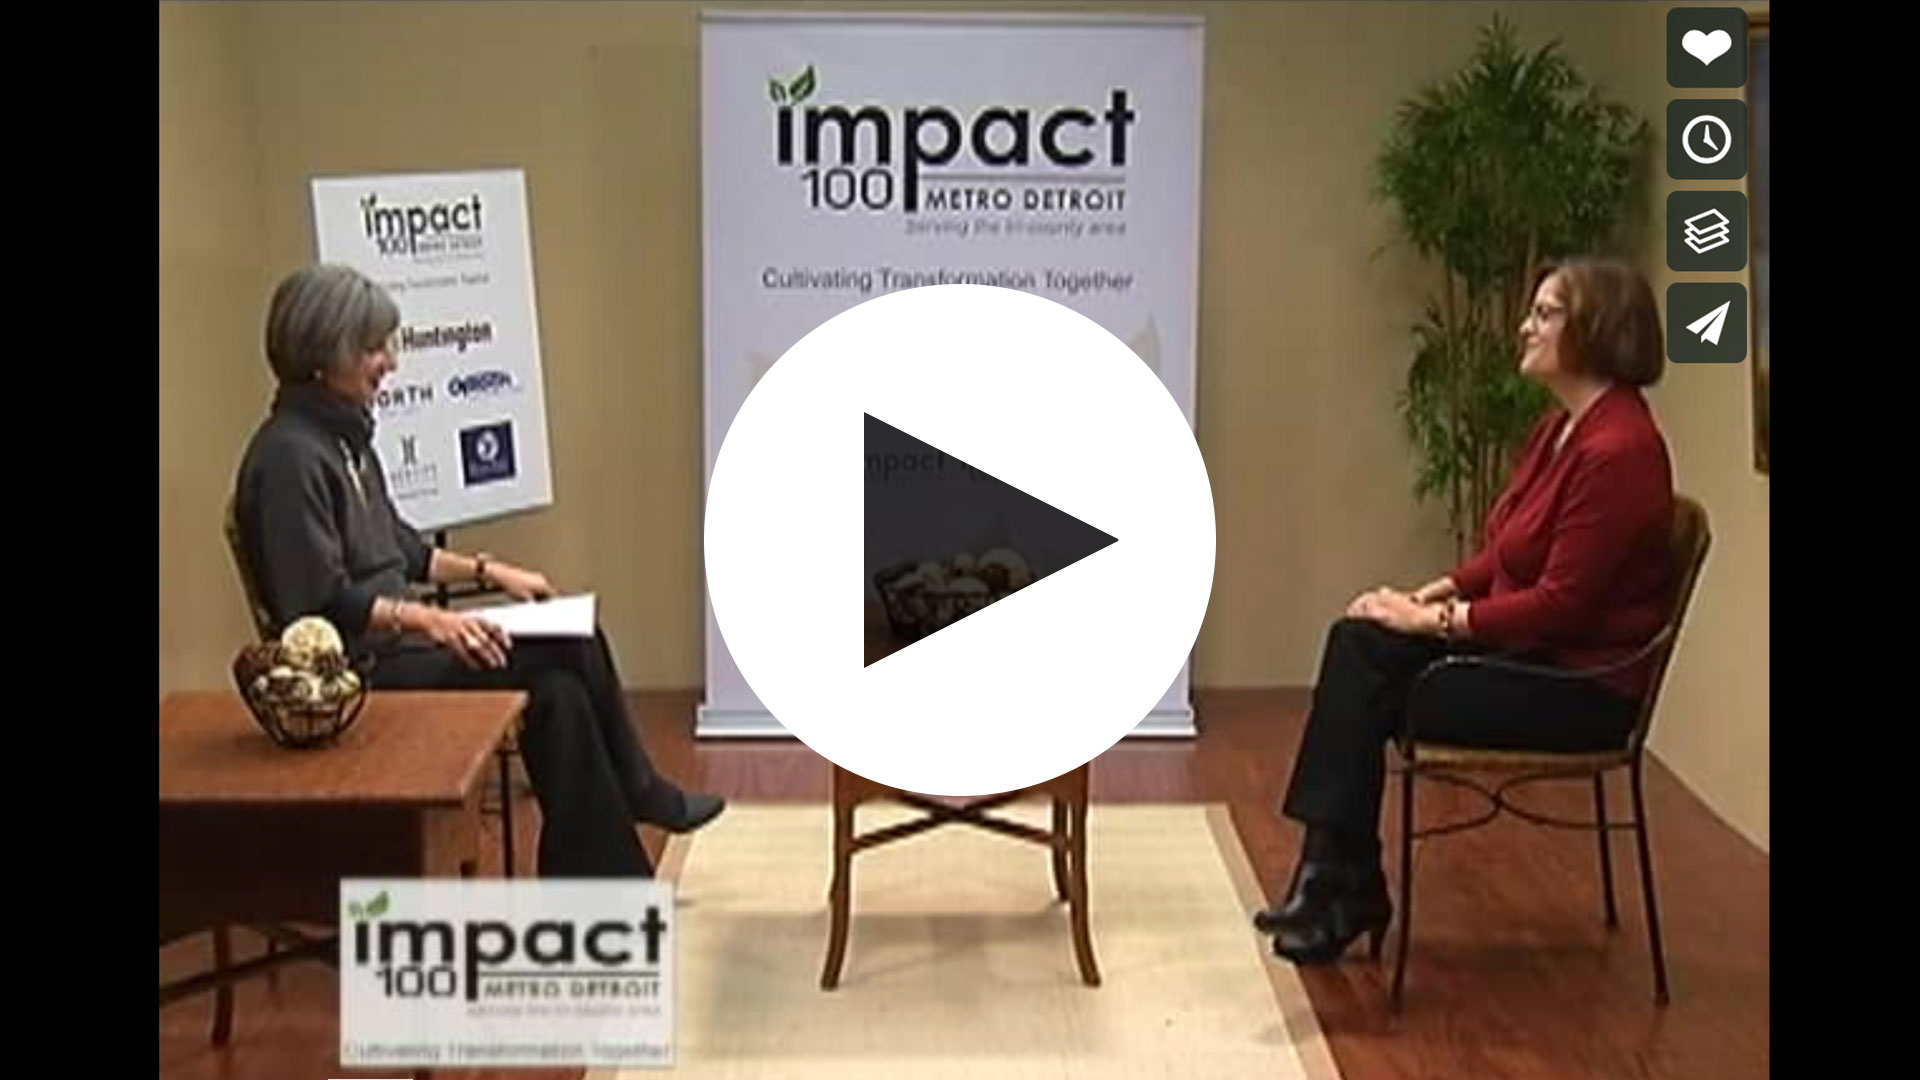 Andrea Foley on Impact 100